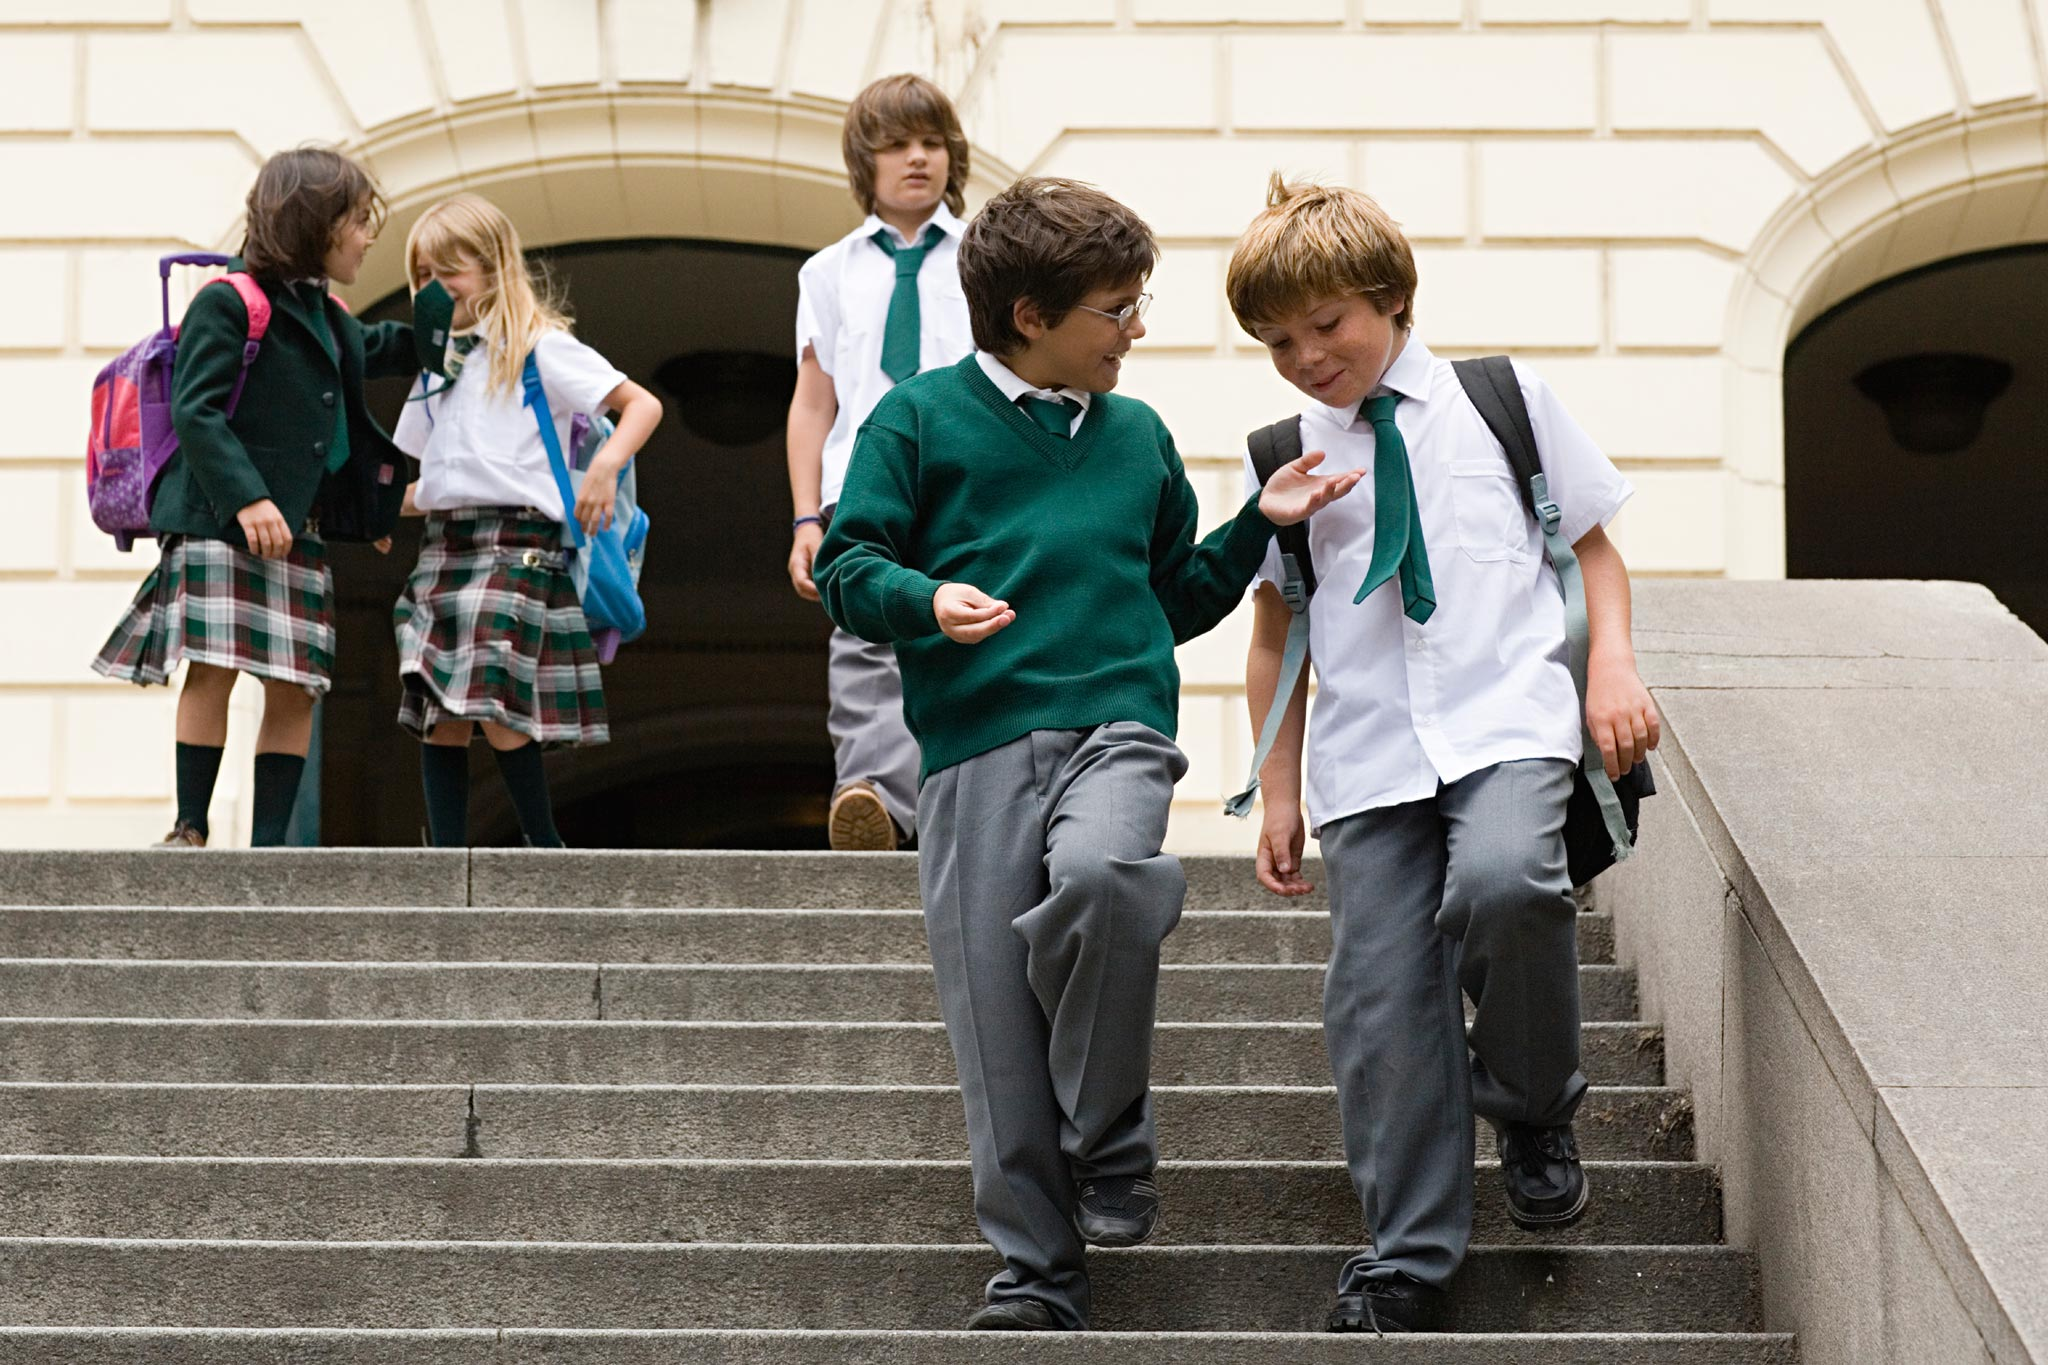 Unparalleled Service, Welcome to School Uniforms Simplified - Jonathan Reed School Uniforms